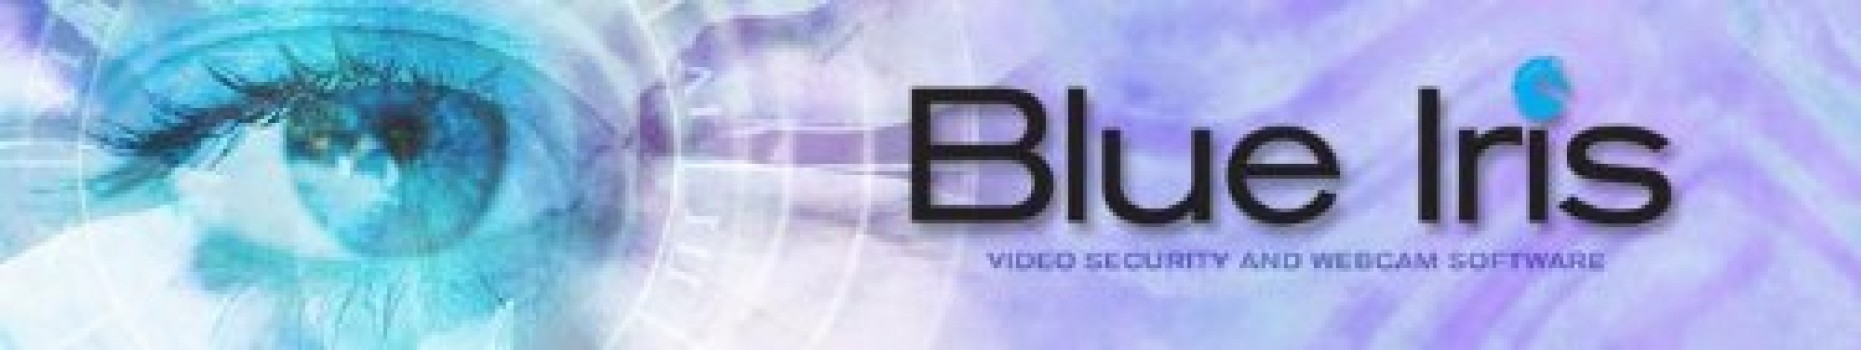 Blue-Iris-Full-Version-Supports-Up-to-64-IP-Cameras-0